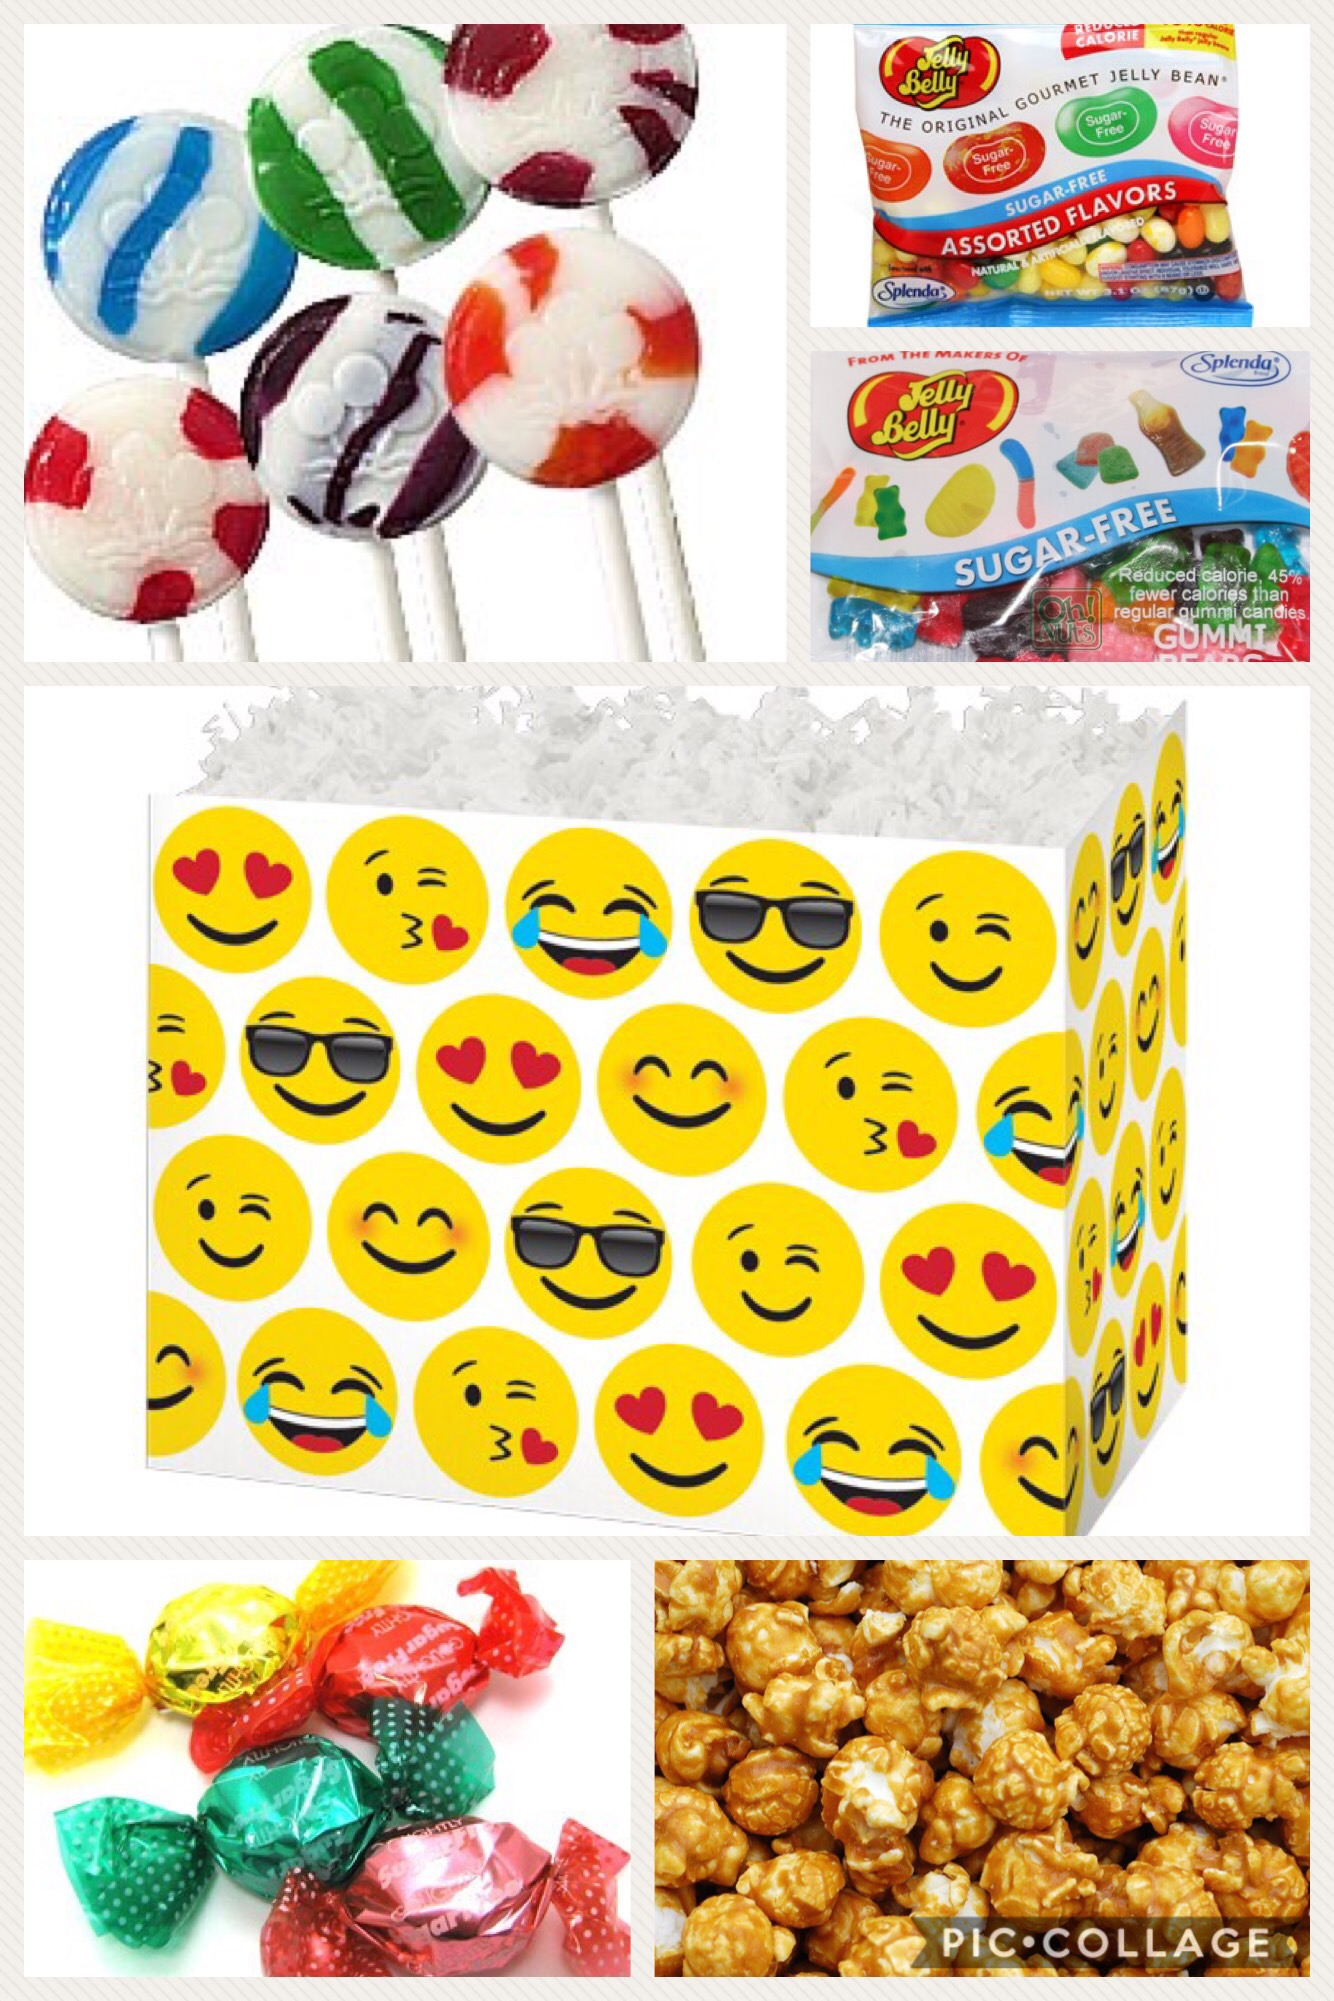 Sugar free gift baskets at diabetic candy page 1 of 3 emoji emoji emogi gift box sugar free negle Gallery